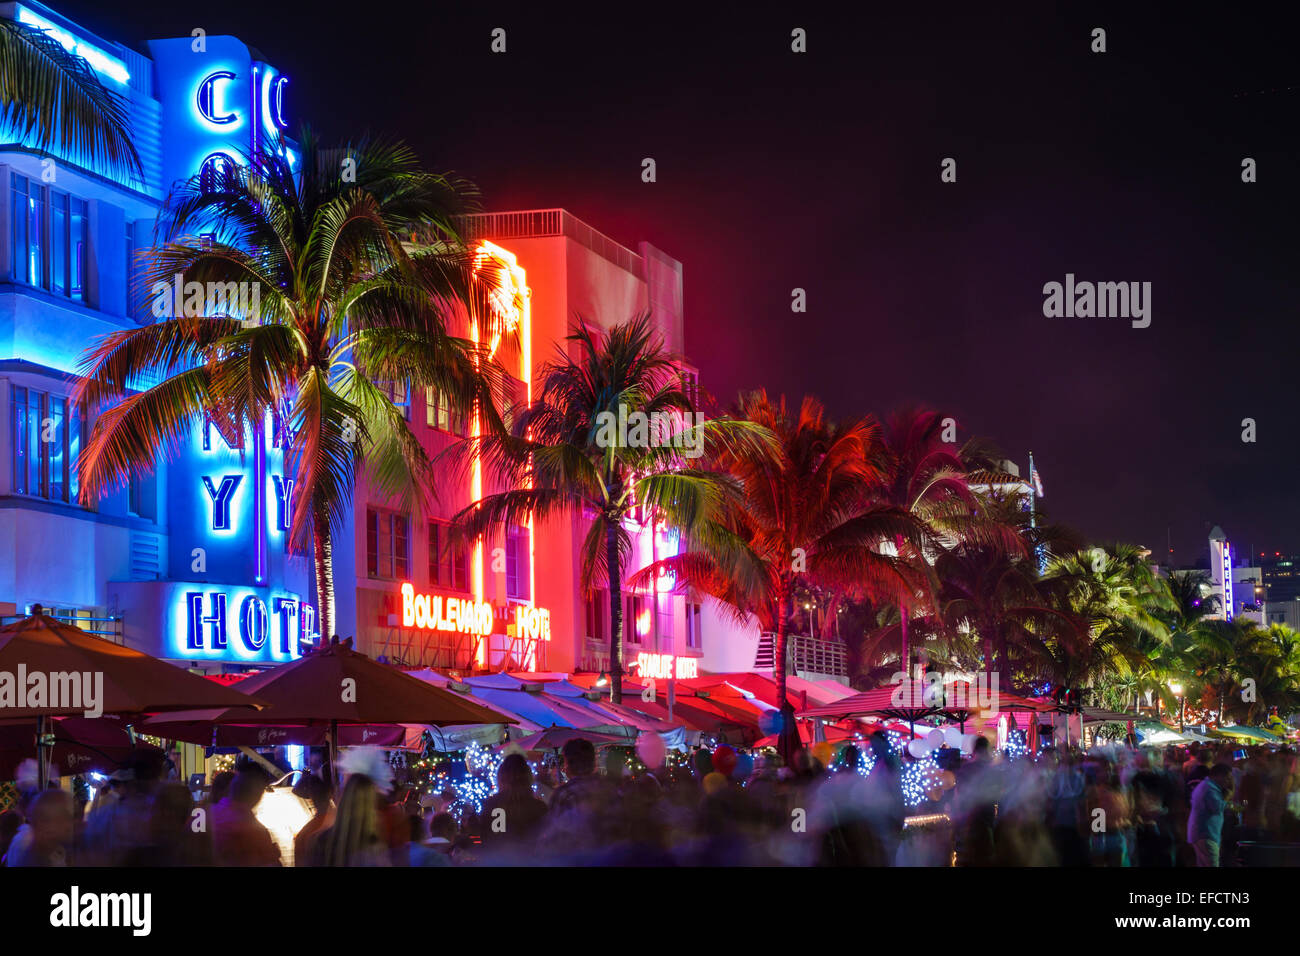 Miami Beach Florida Art Deco District Ocean Drive New Years Eve Night Nightlife Colony Hotel Boulevard Neon Sign